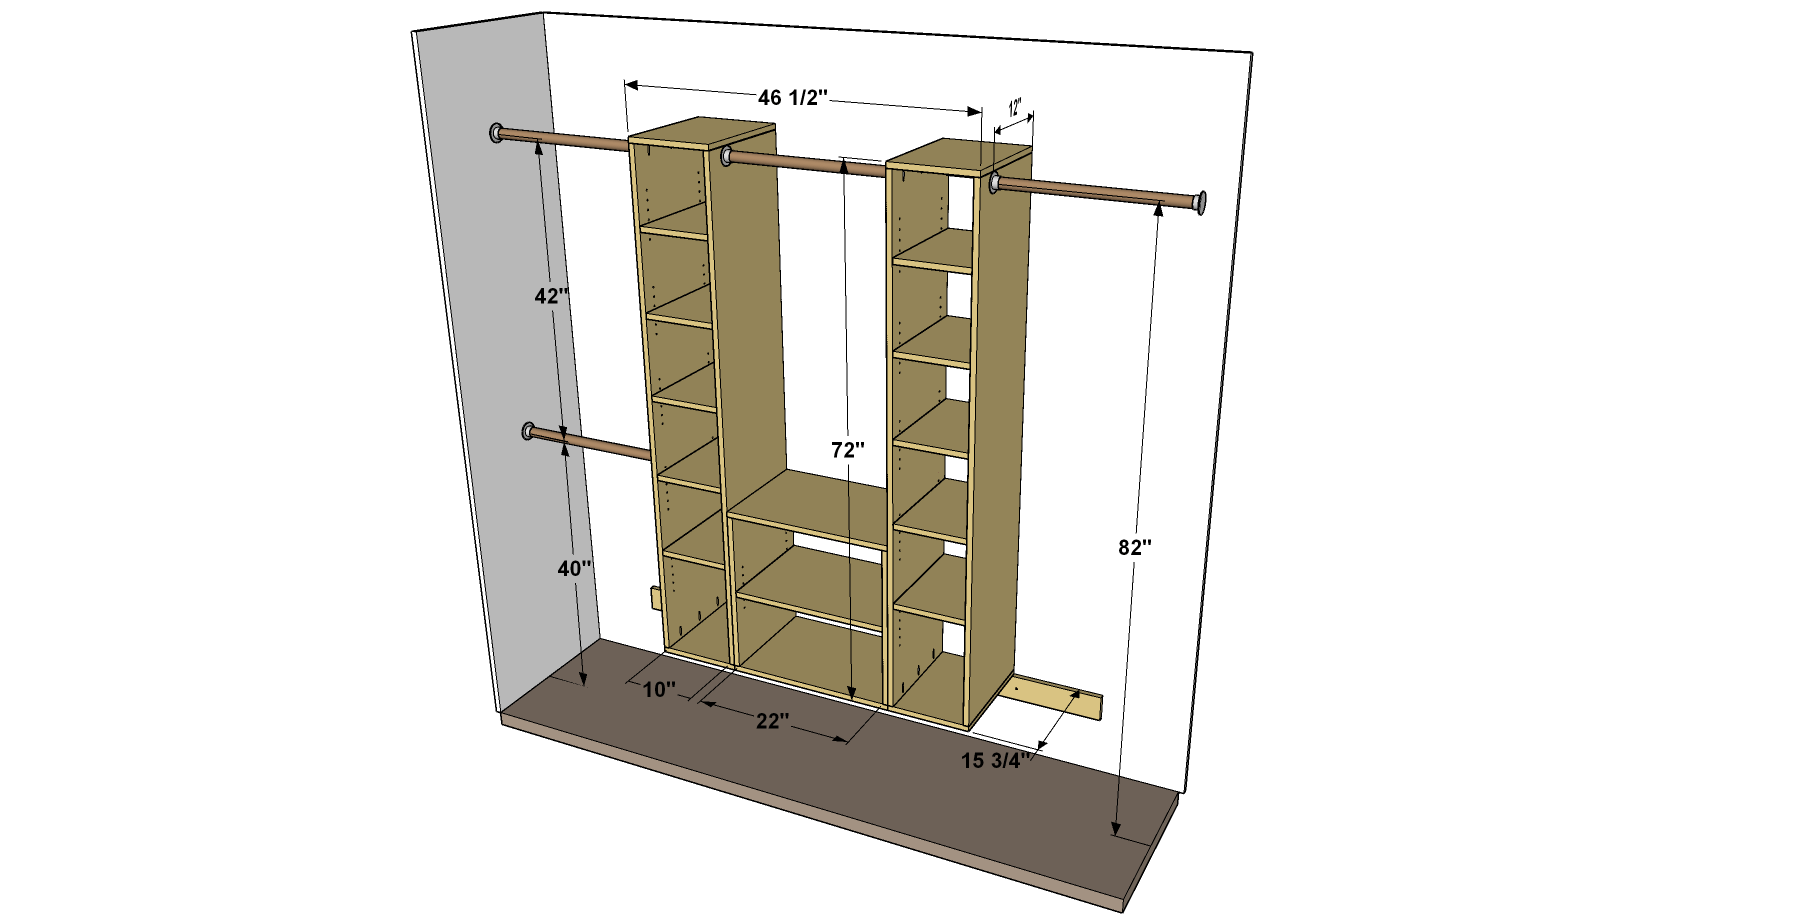 modular-closet-organizer-overall-with-dimensions